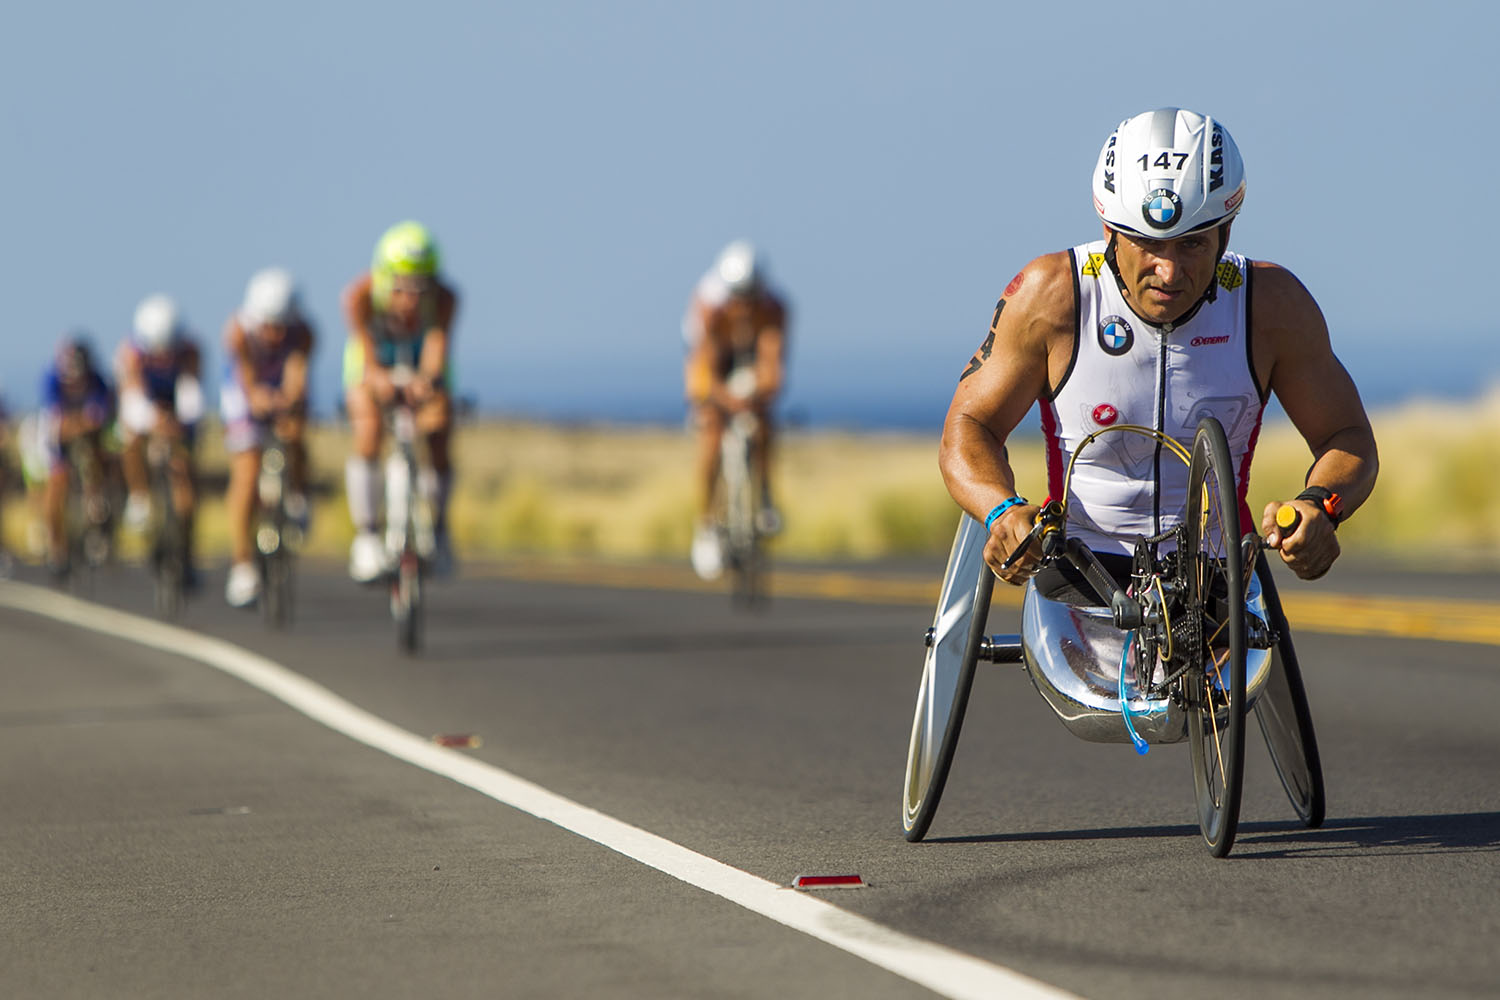 Paralympic handcycle champion Alex Zanardi leads a pack of racers during the 112-mile bike portion at the 2014 IRONMAN World Championship.